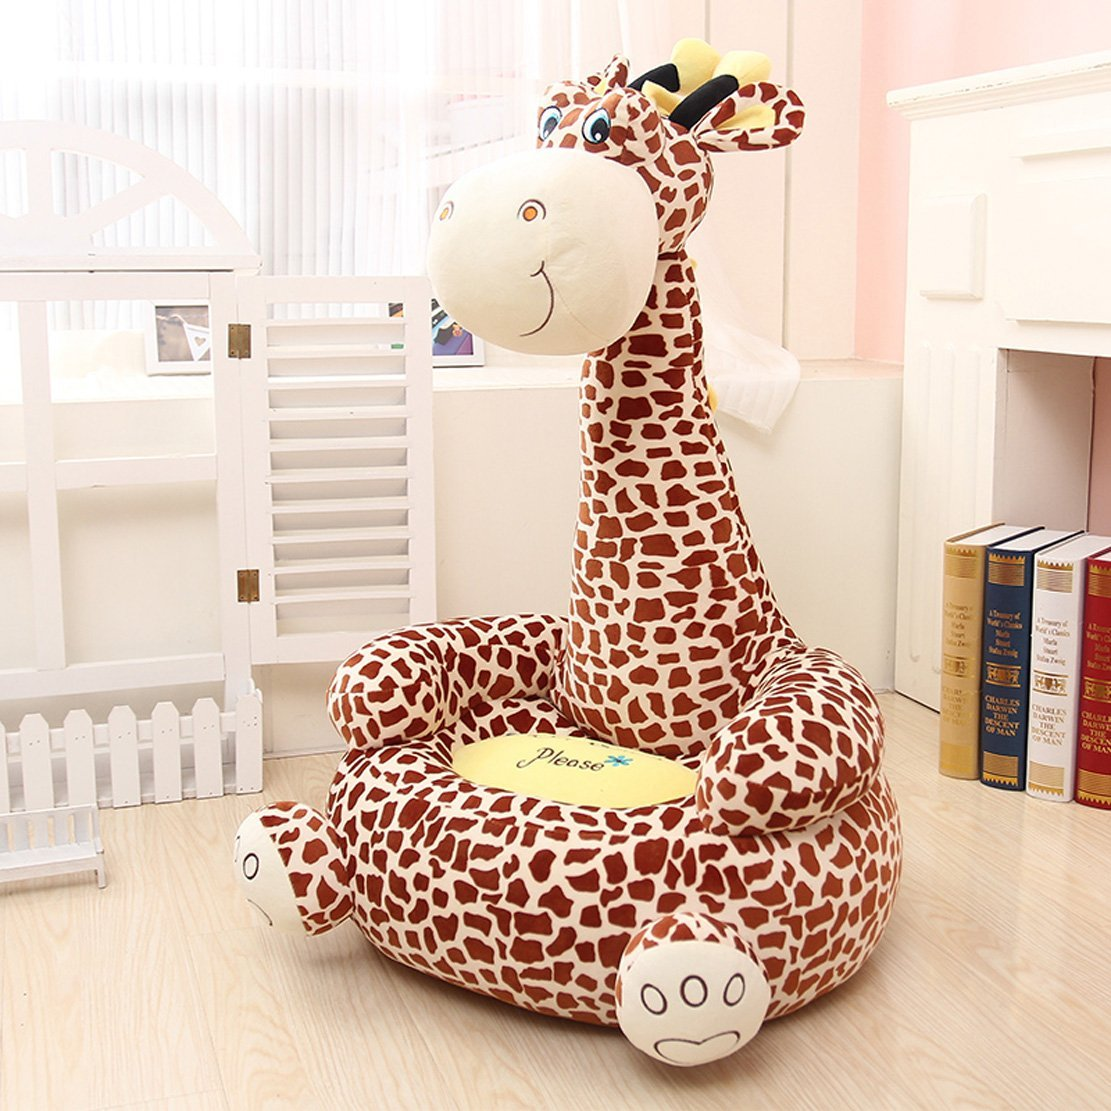 soft bean bag chairs dining chair covers adelaide funky toy check these designs out